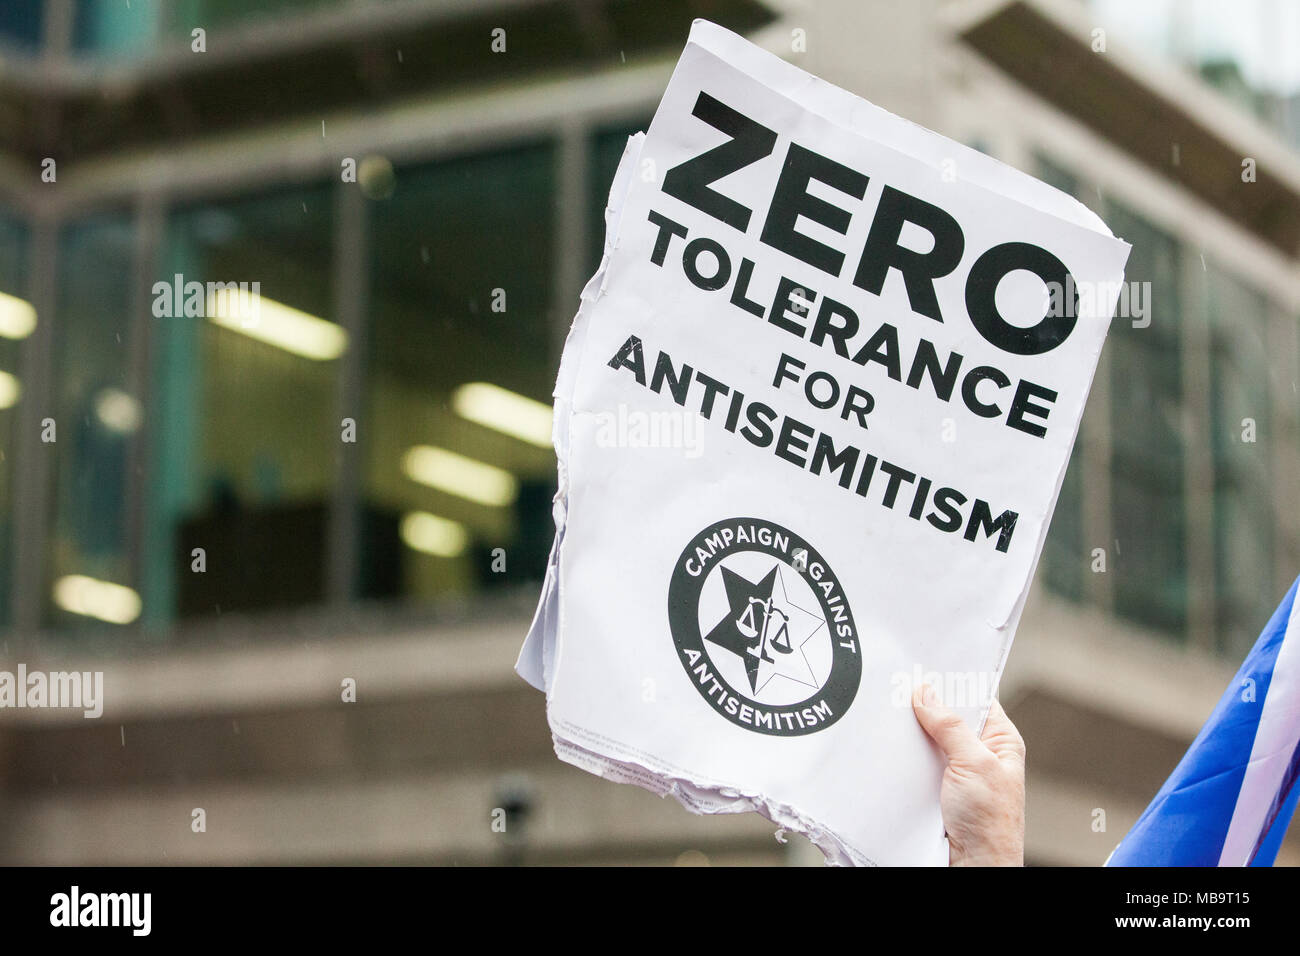 London, UK. 8th April, 2018. Jews and non-Jews attend a demonstration organised by the Campaign Against Antisemitism outside the head office of the Labour Party to apply pressure on its leadership to demonstrate a 'zero tolerance' approach to anti-Semitism. Credit: Mark Kerrison/Alamy Live News Stock Photo